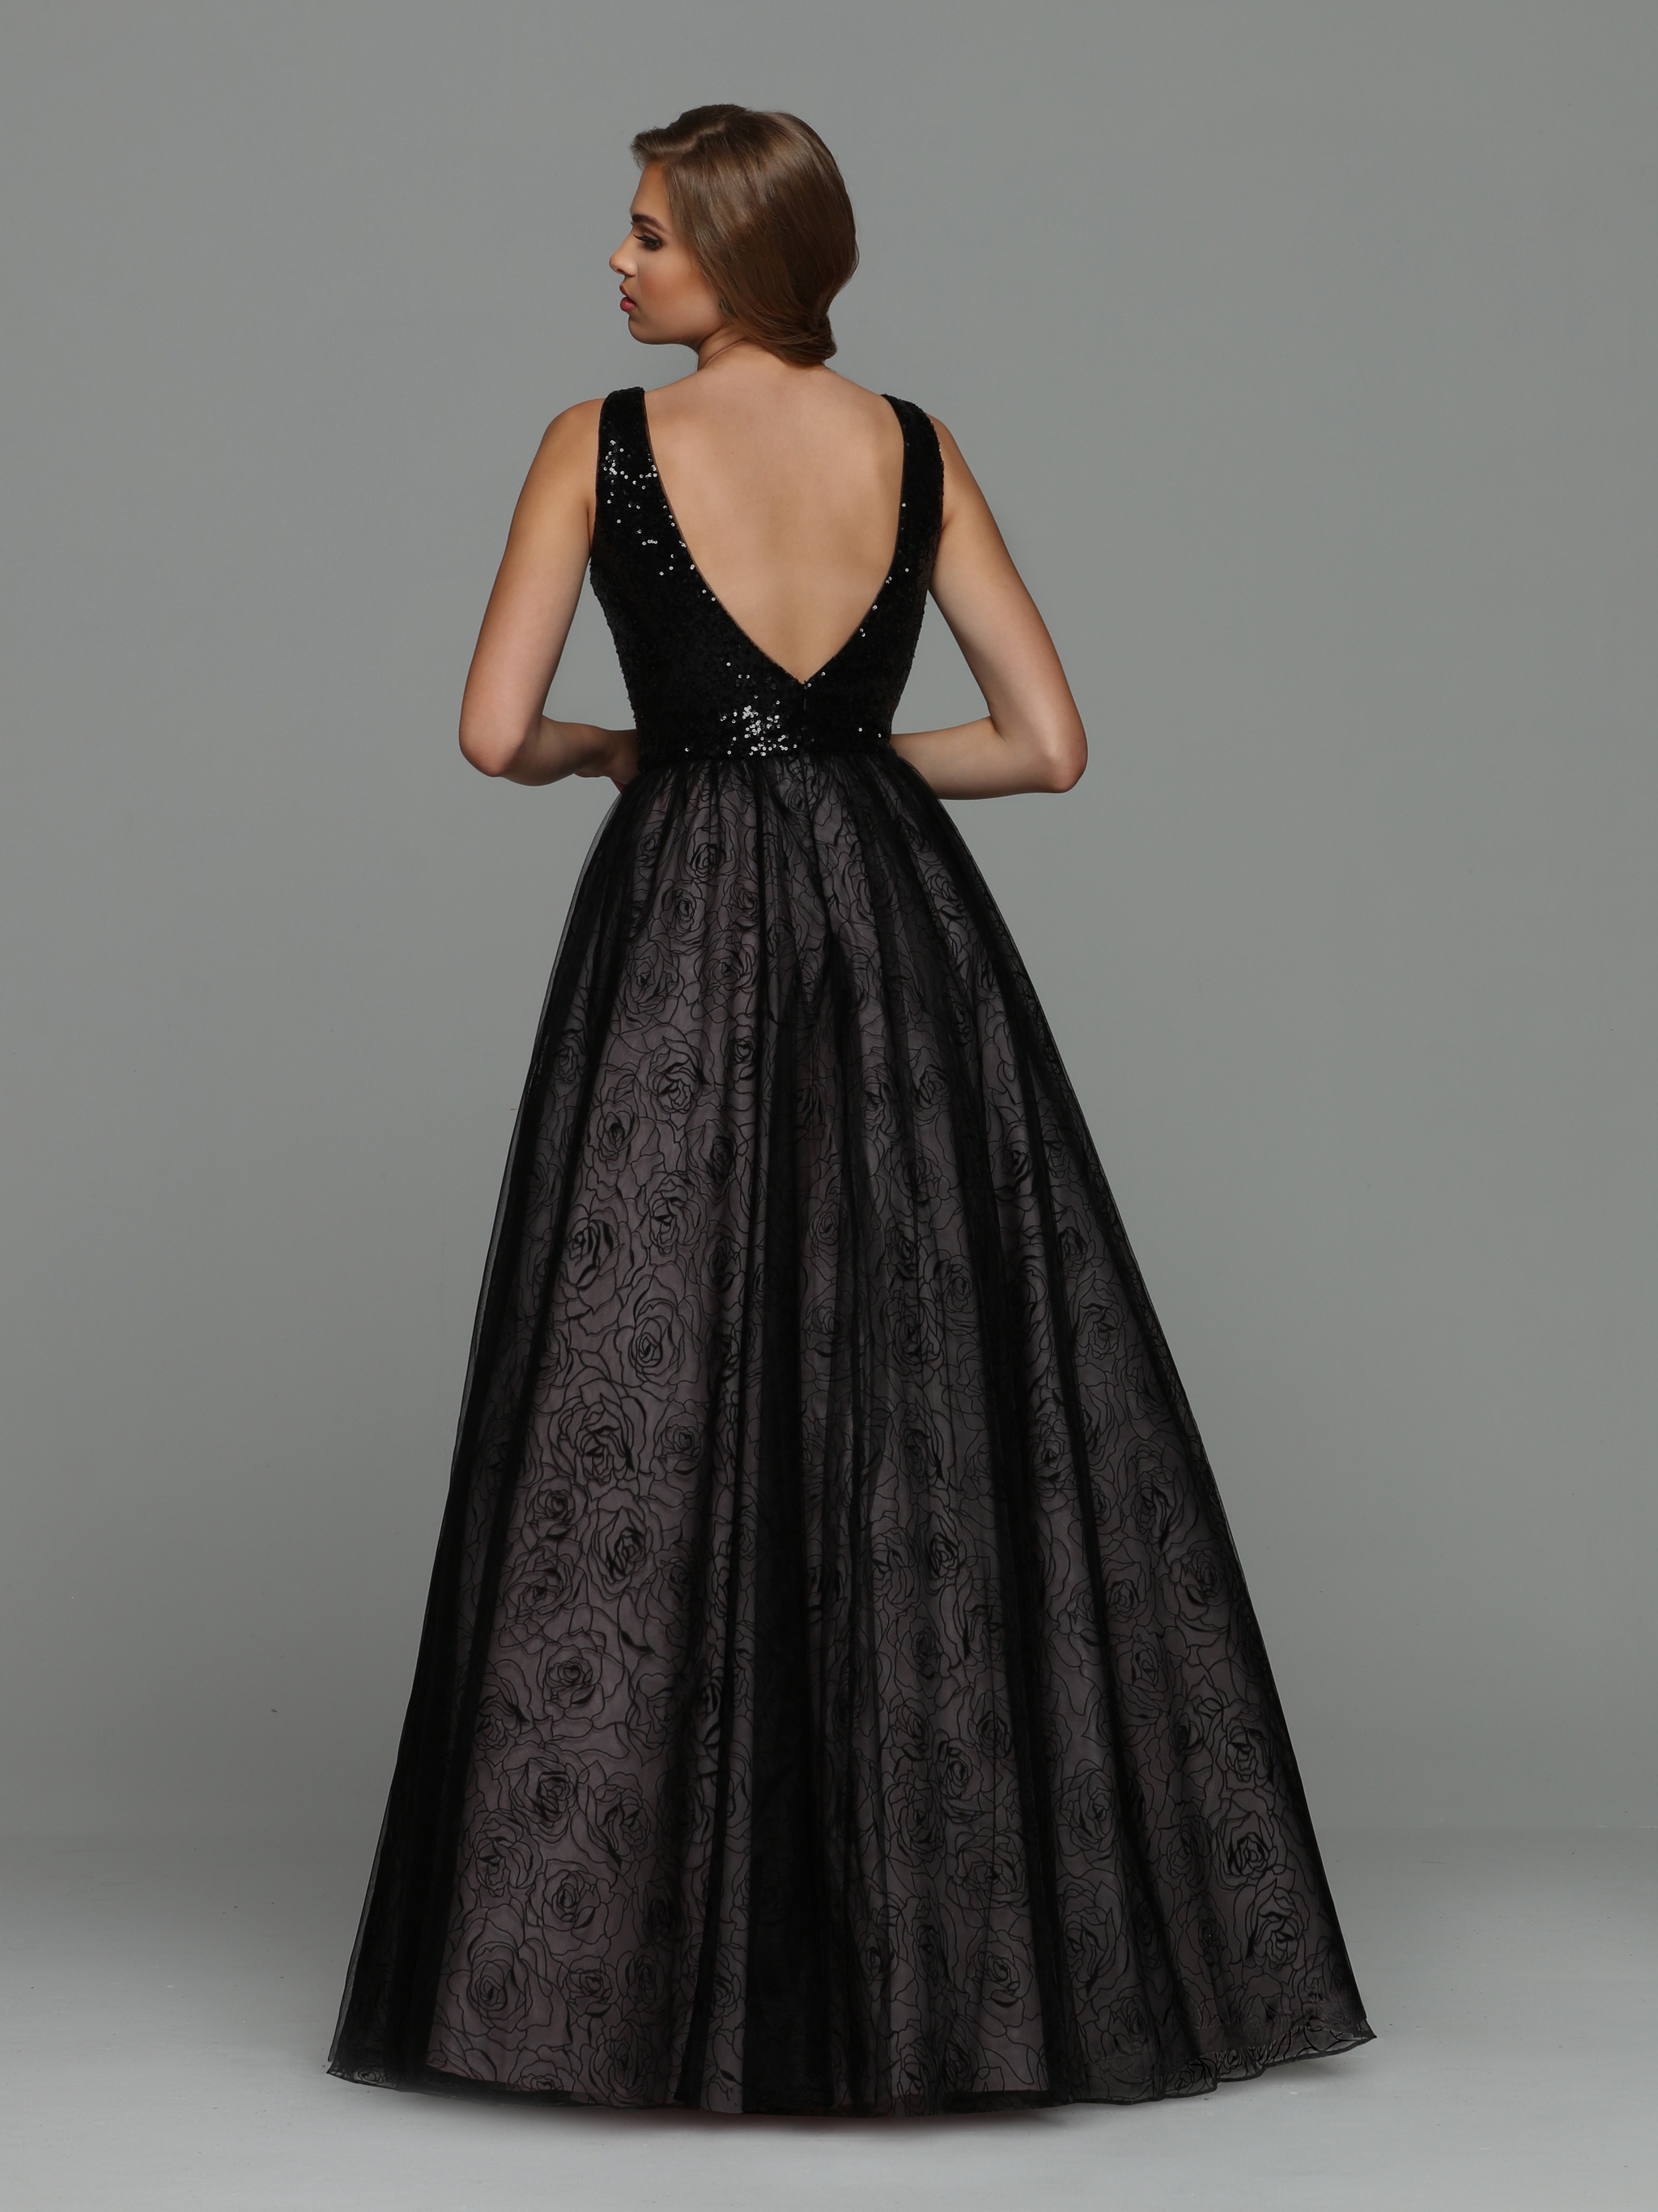 Image showing back view of style #71948